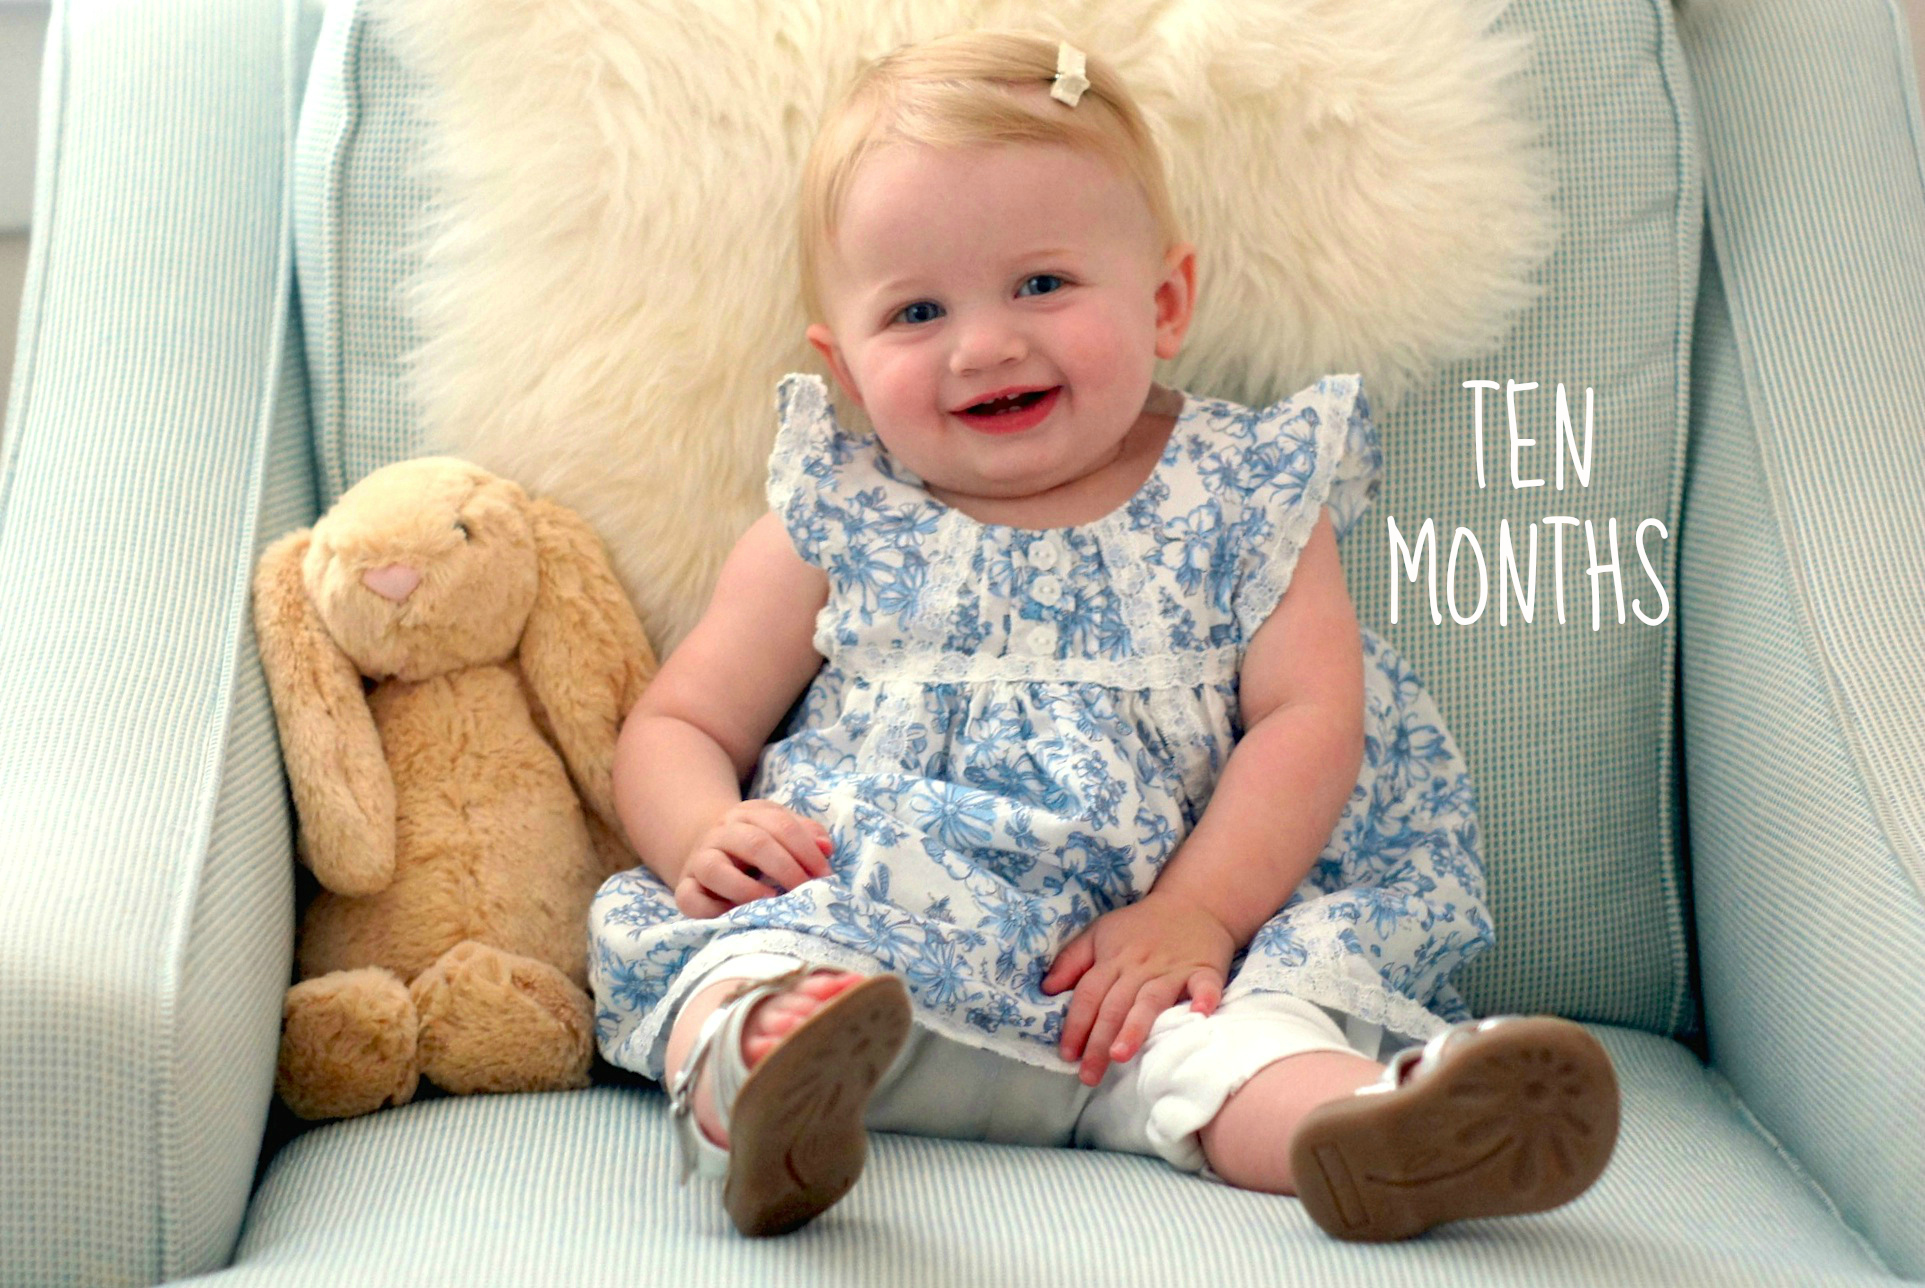 10-months-old